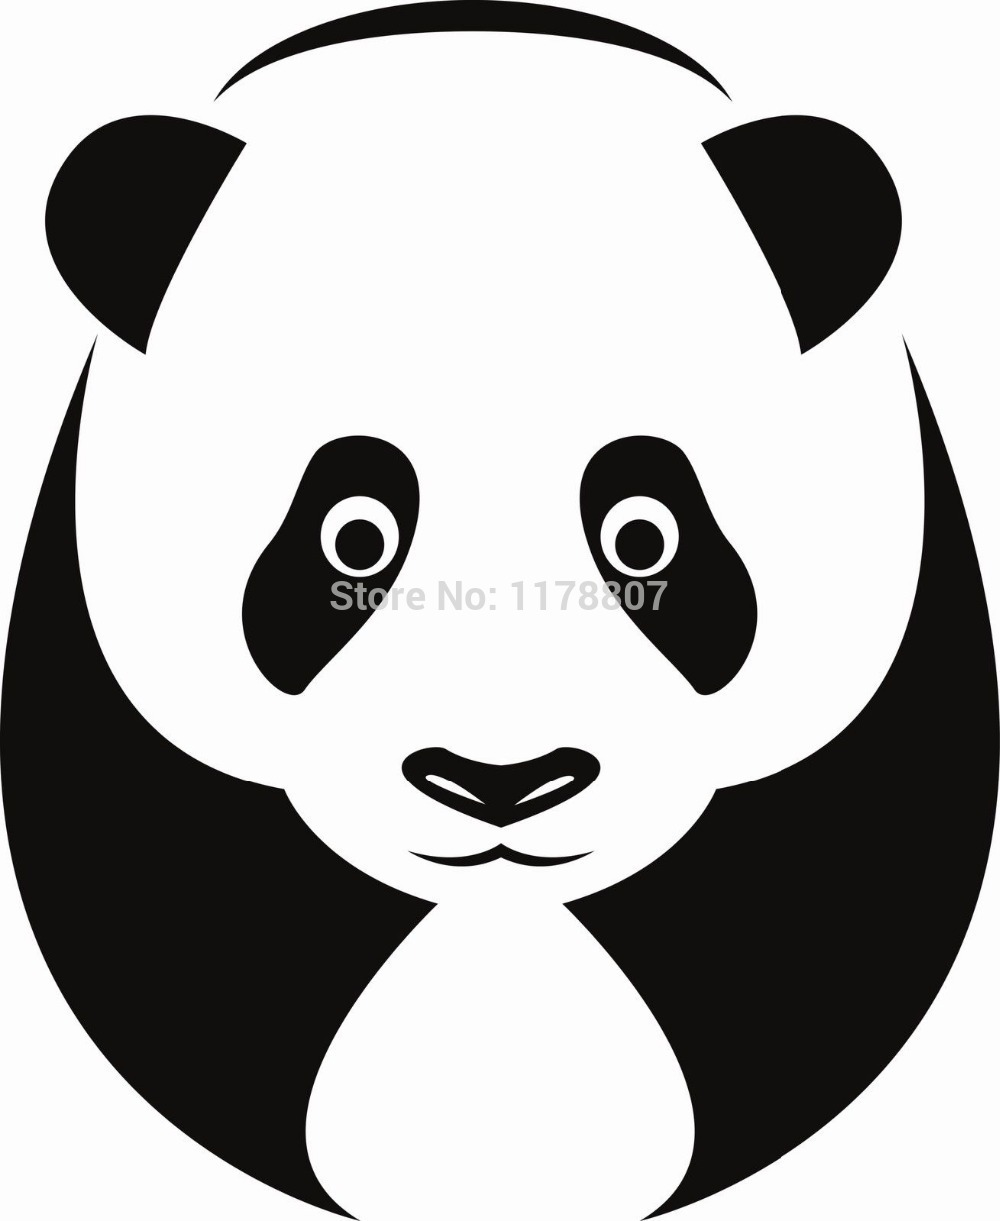 Banksy panda with guns sticker truck stickers logos and vinyl - Big Giant Friendly Panda Car Window Sticker Truck Bumper Auto Suv Door And All The Smooth Surface Vinyl Decal